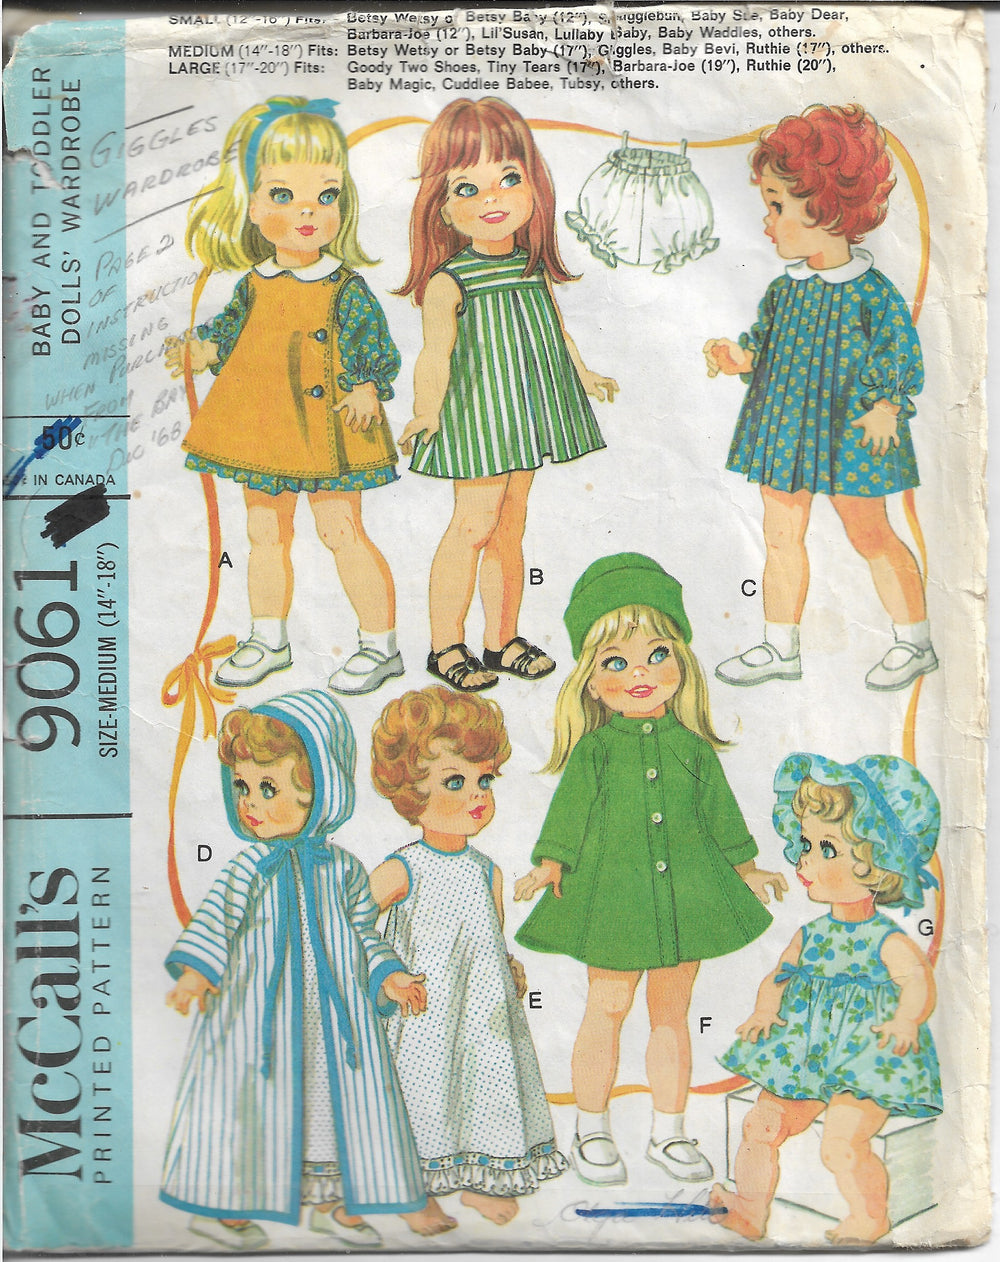 McCalls 9061 Baby Doll Wardrobe Betsy Wetsy 17 inch Vintage Sewing Pattern 1960s - VintageStitching - Vintage Sewing Patterns